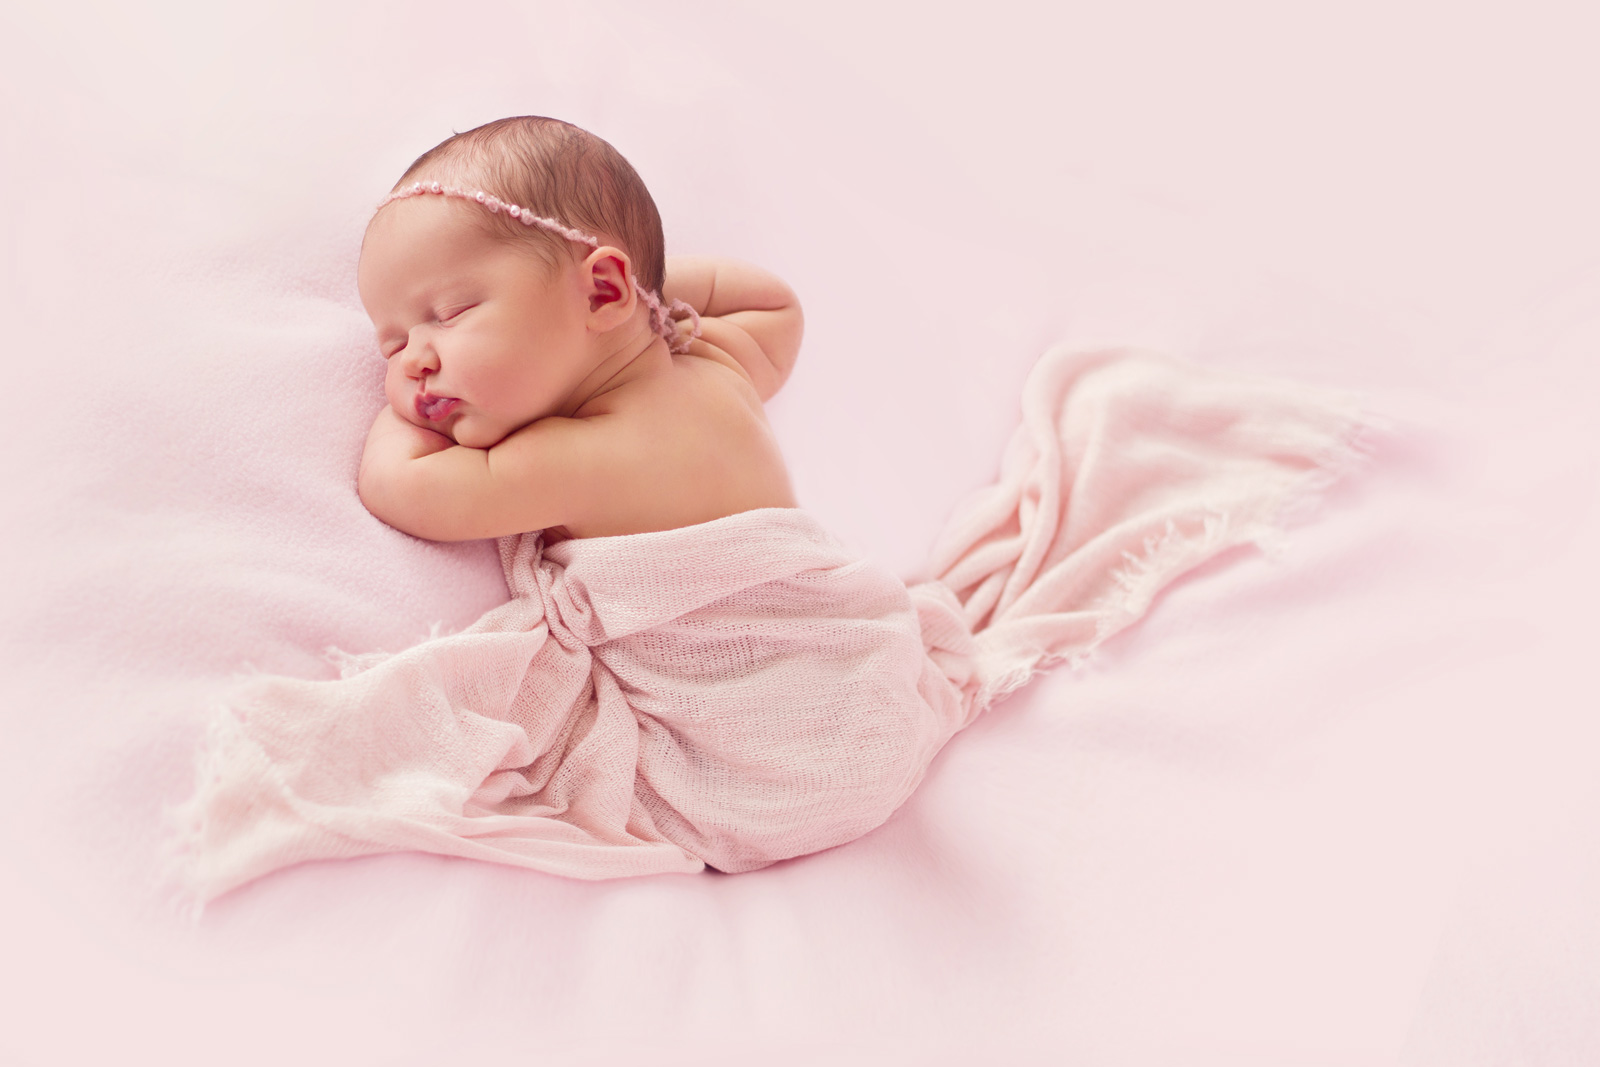 newborn-photographer-in-cape-town, cape-town-newborn-photographer, maternity-session-in-cape-town, maternity-photographer-in-cape-town, cape-town-maternity-photographer